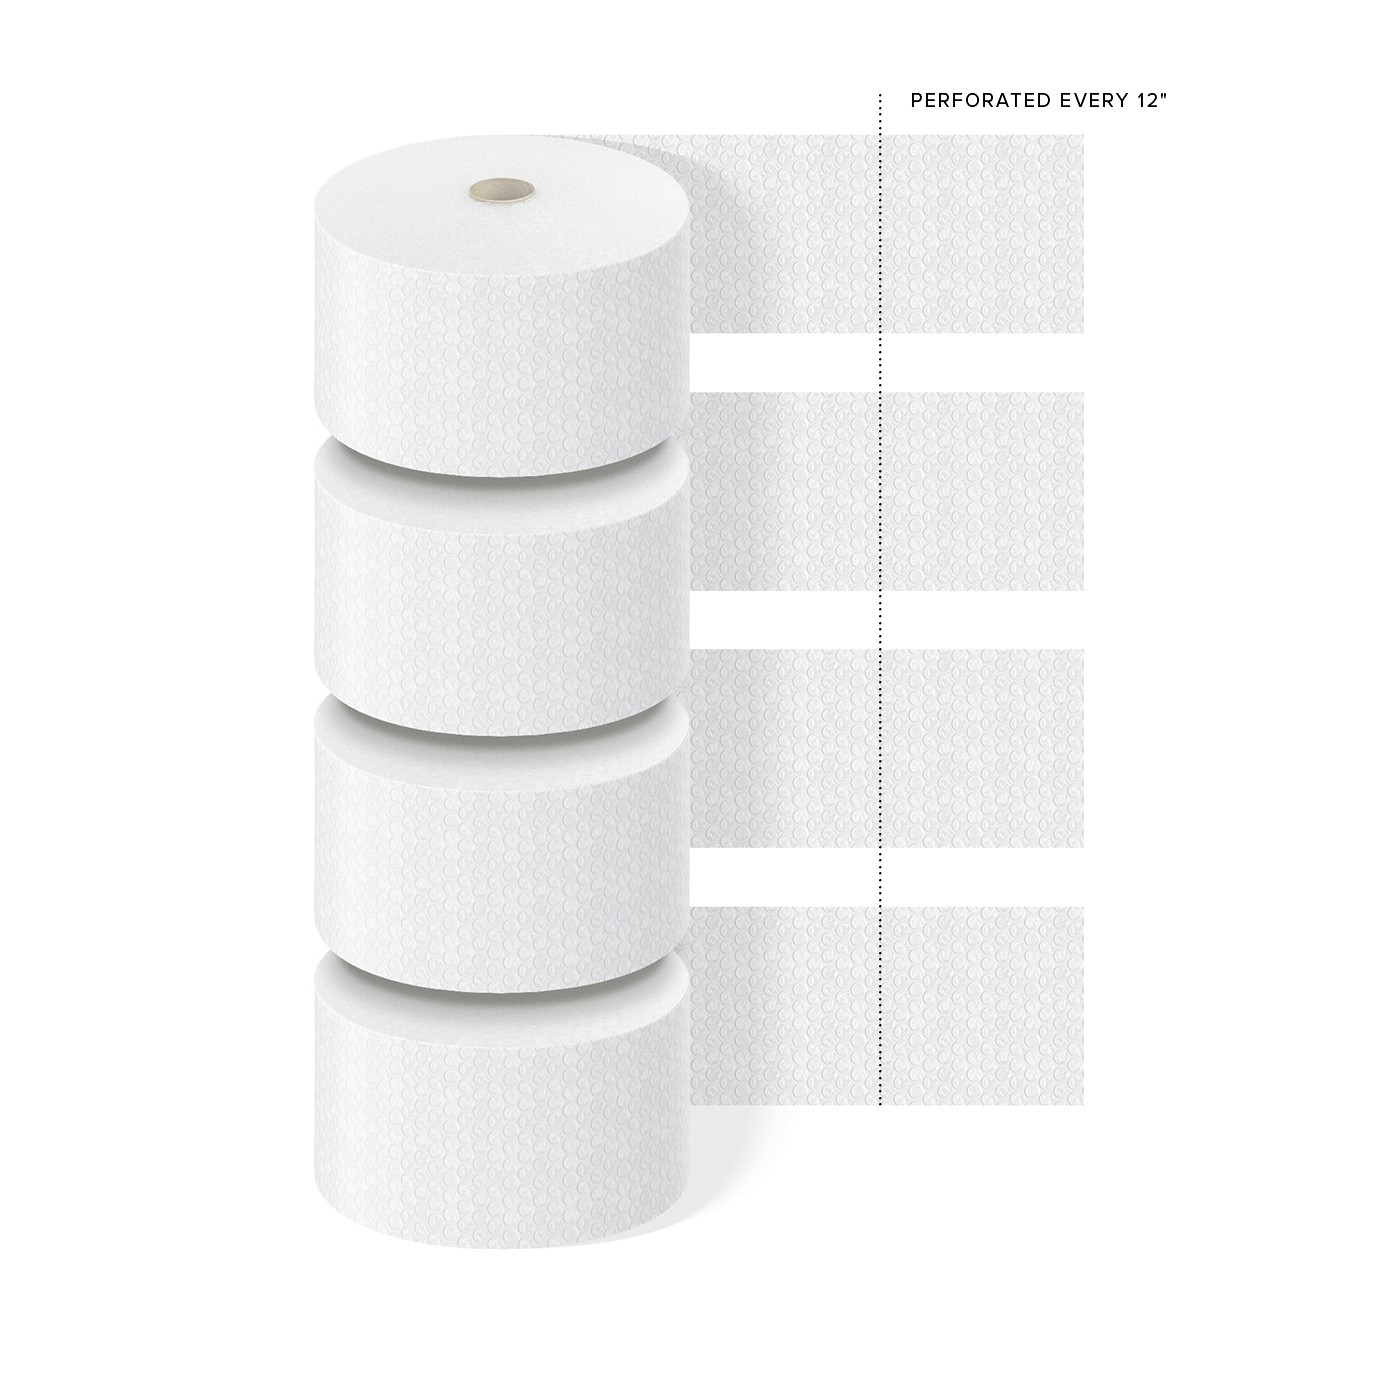 """TOTALPACK® 1/2"""" x 12"""" x 250' Perforated Every 12"""", Air Bubble 4 Rolls"""